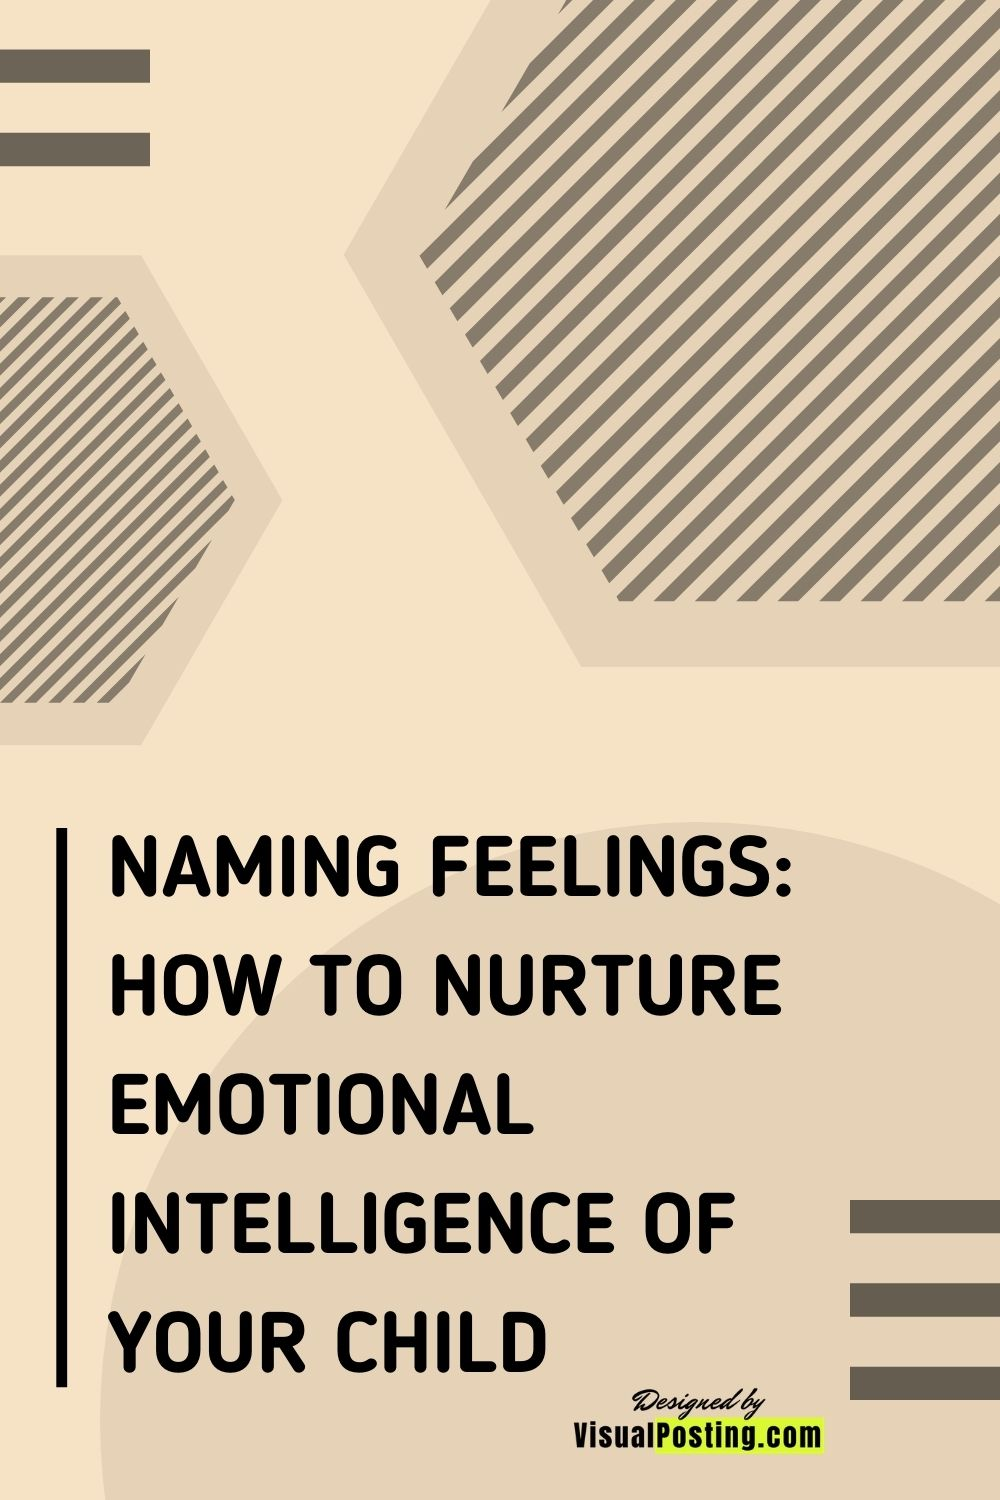 Naming feelings: how to nurture emotional intelligence.jpg